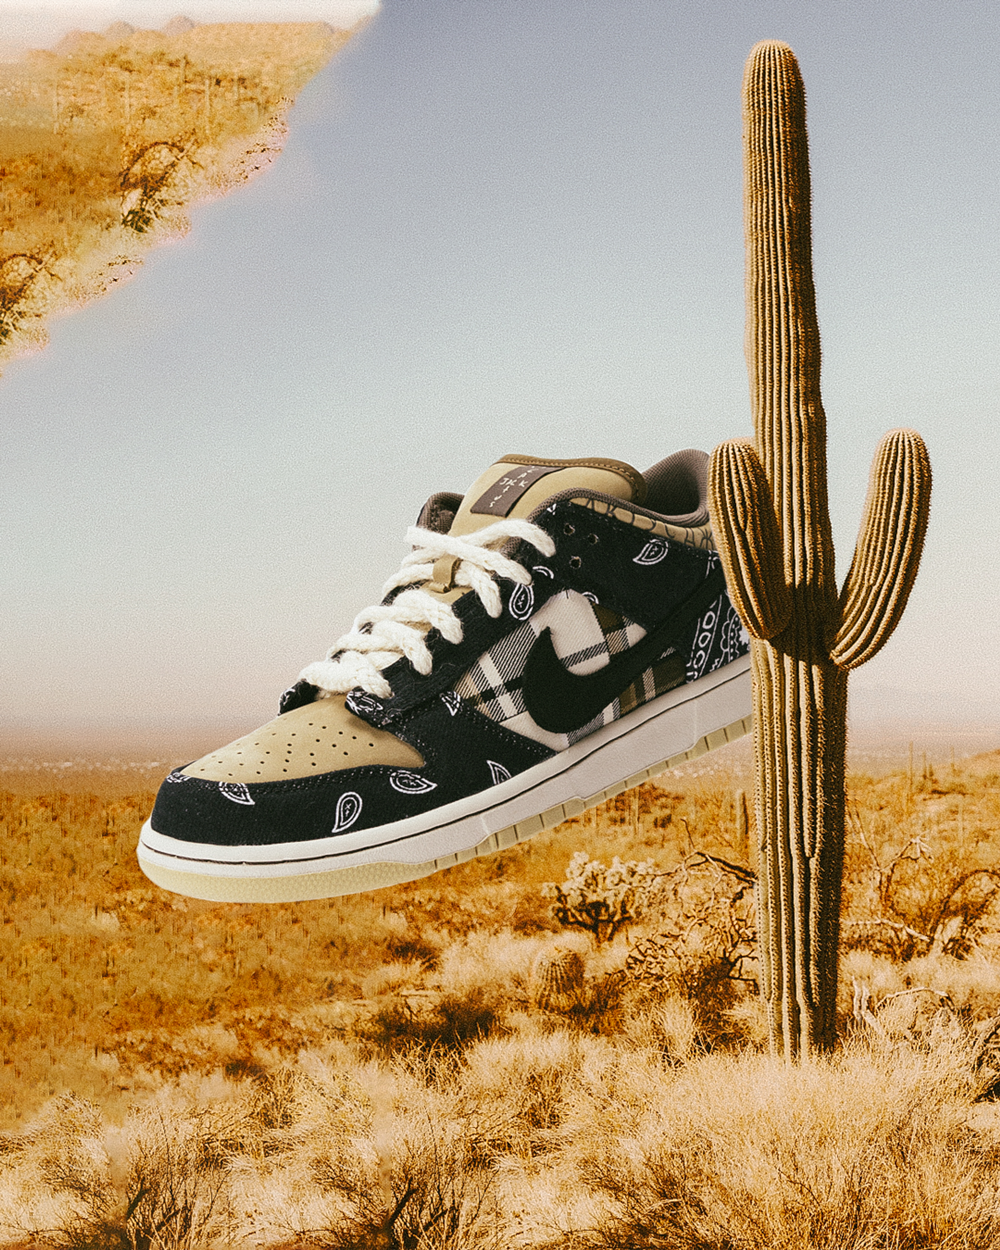 The Nike SB x Travis Scott Dunk Low